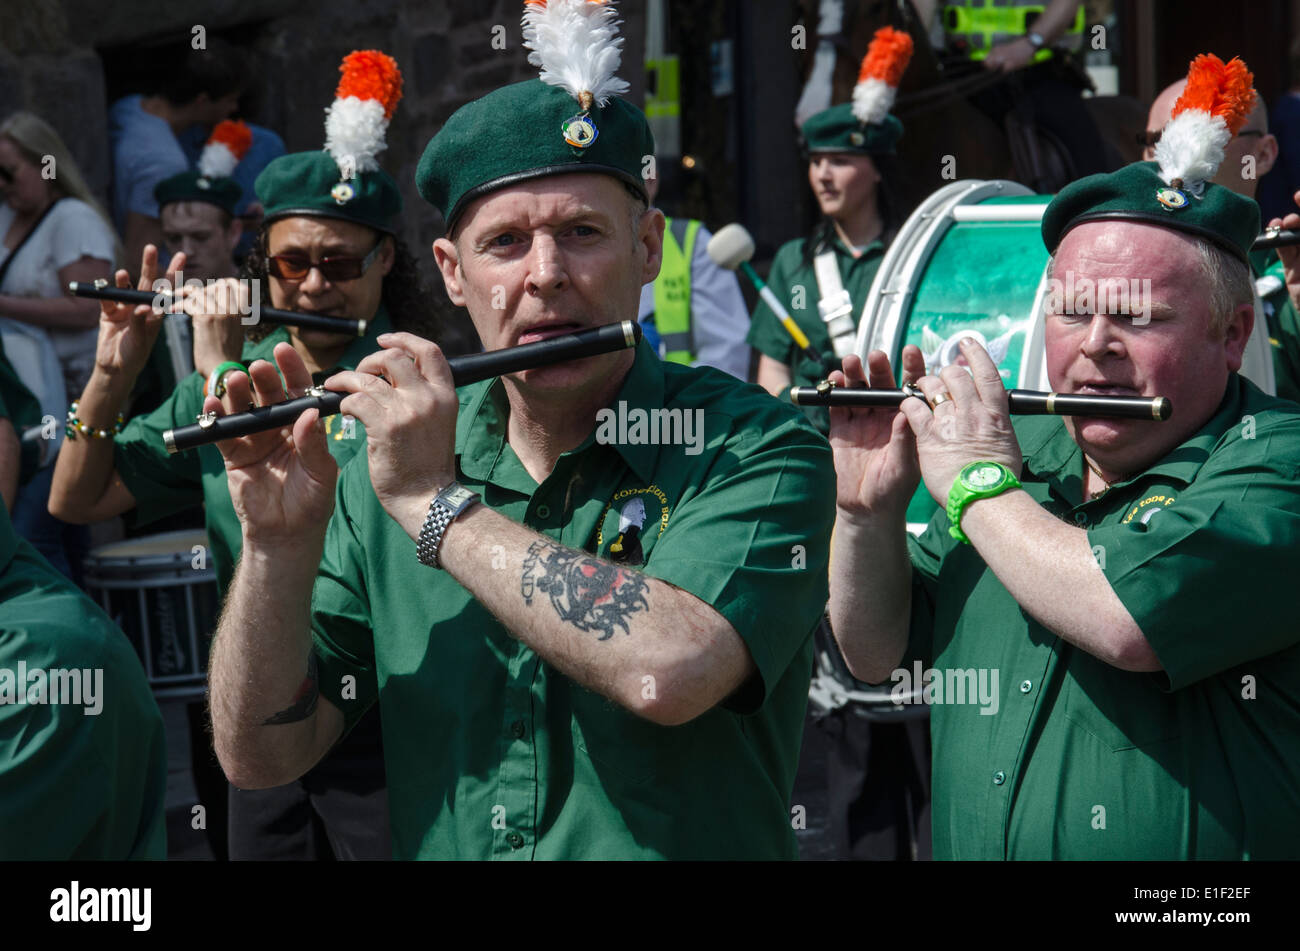 Mitglieder einer Irish Republican Flute Band auf James Connolly Memorial März in Edinburgh, 2014. Stockbild